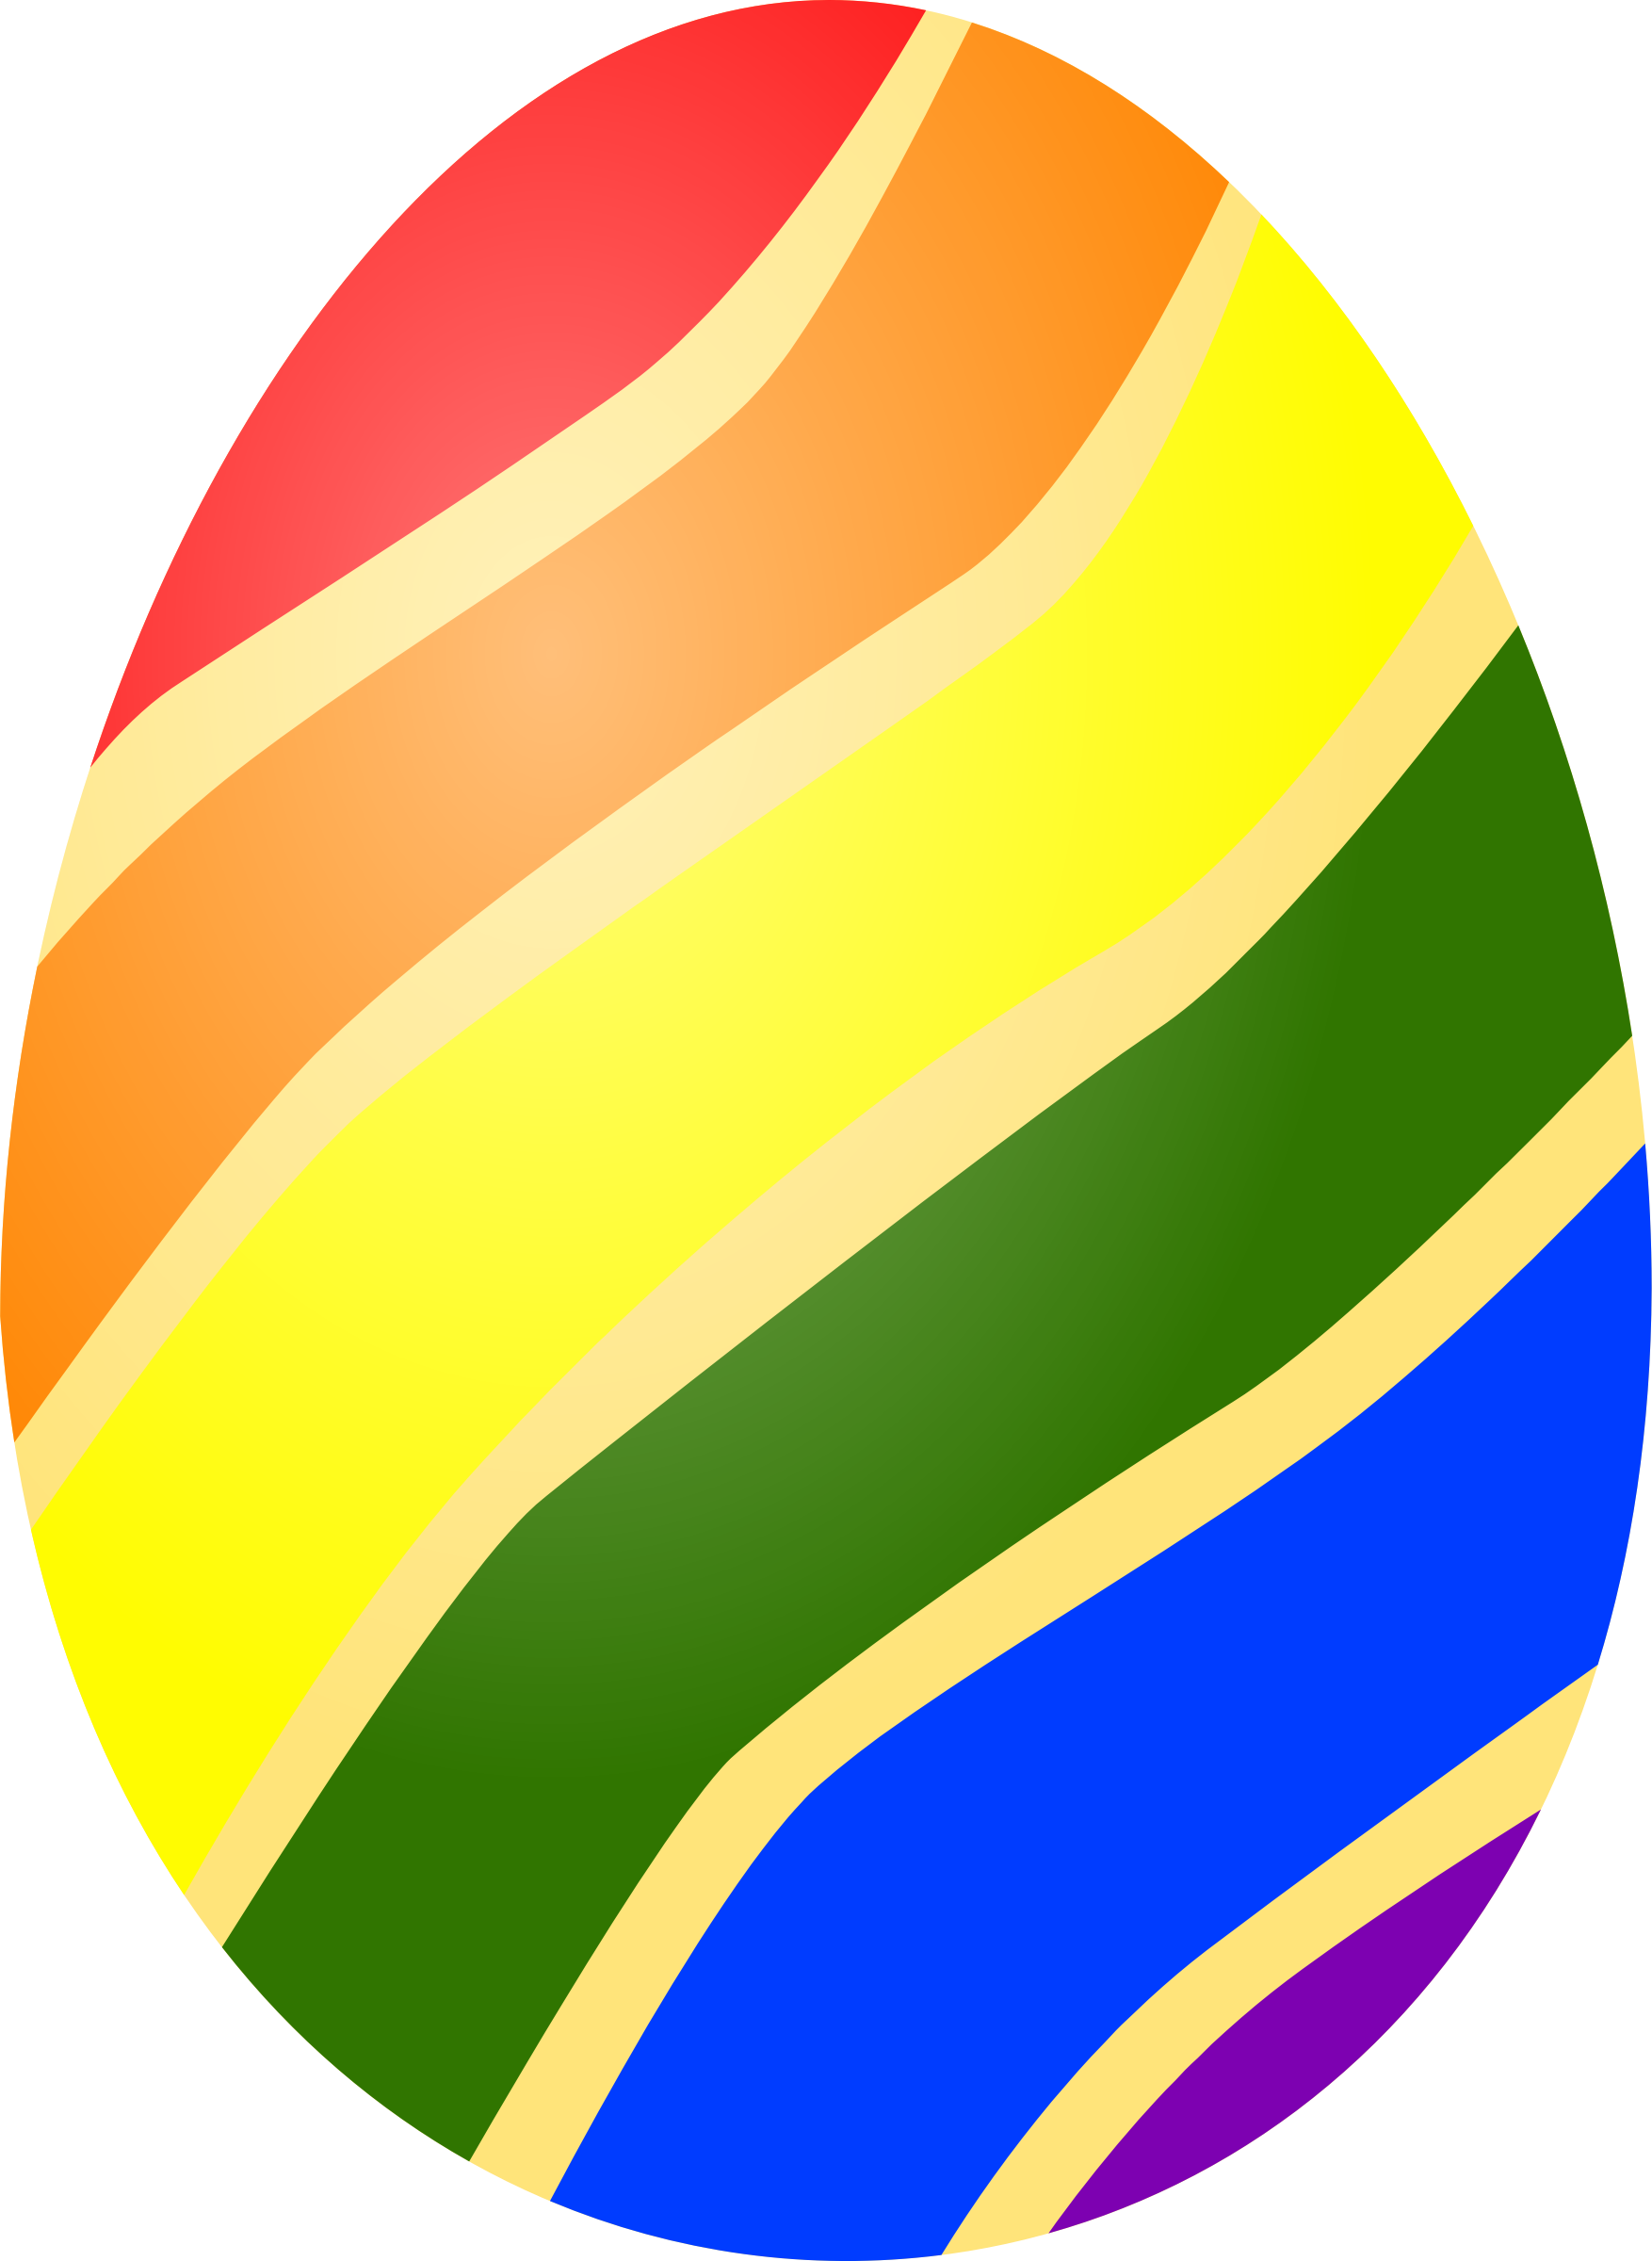 Easter egg 10 by Firkin